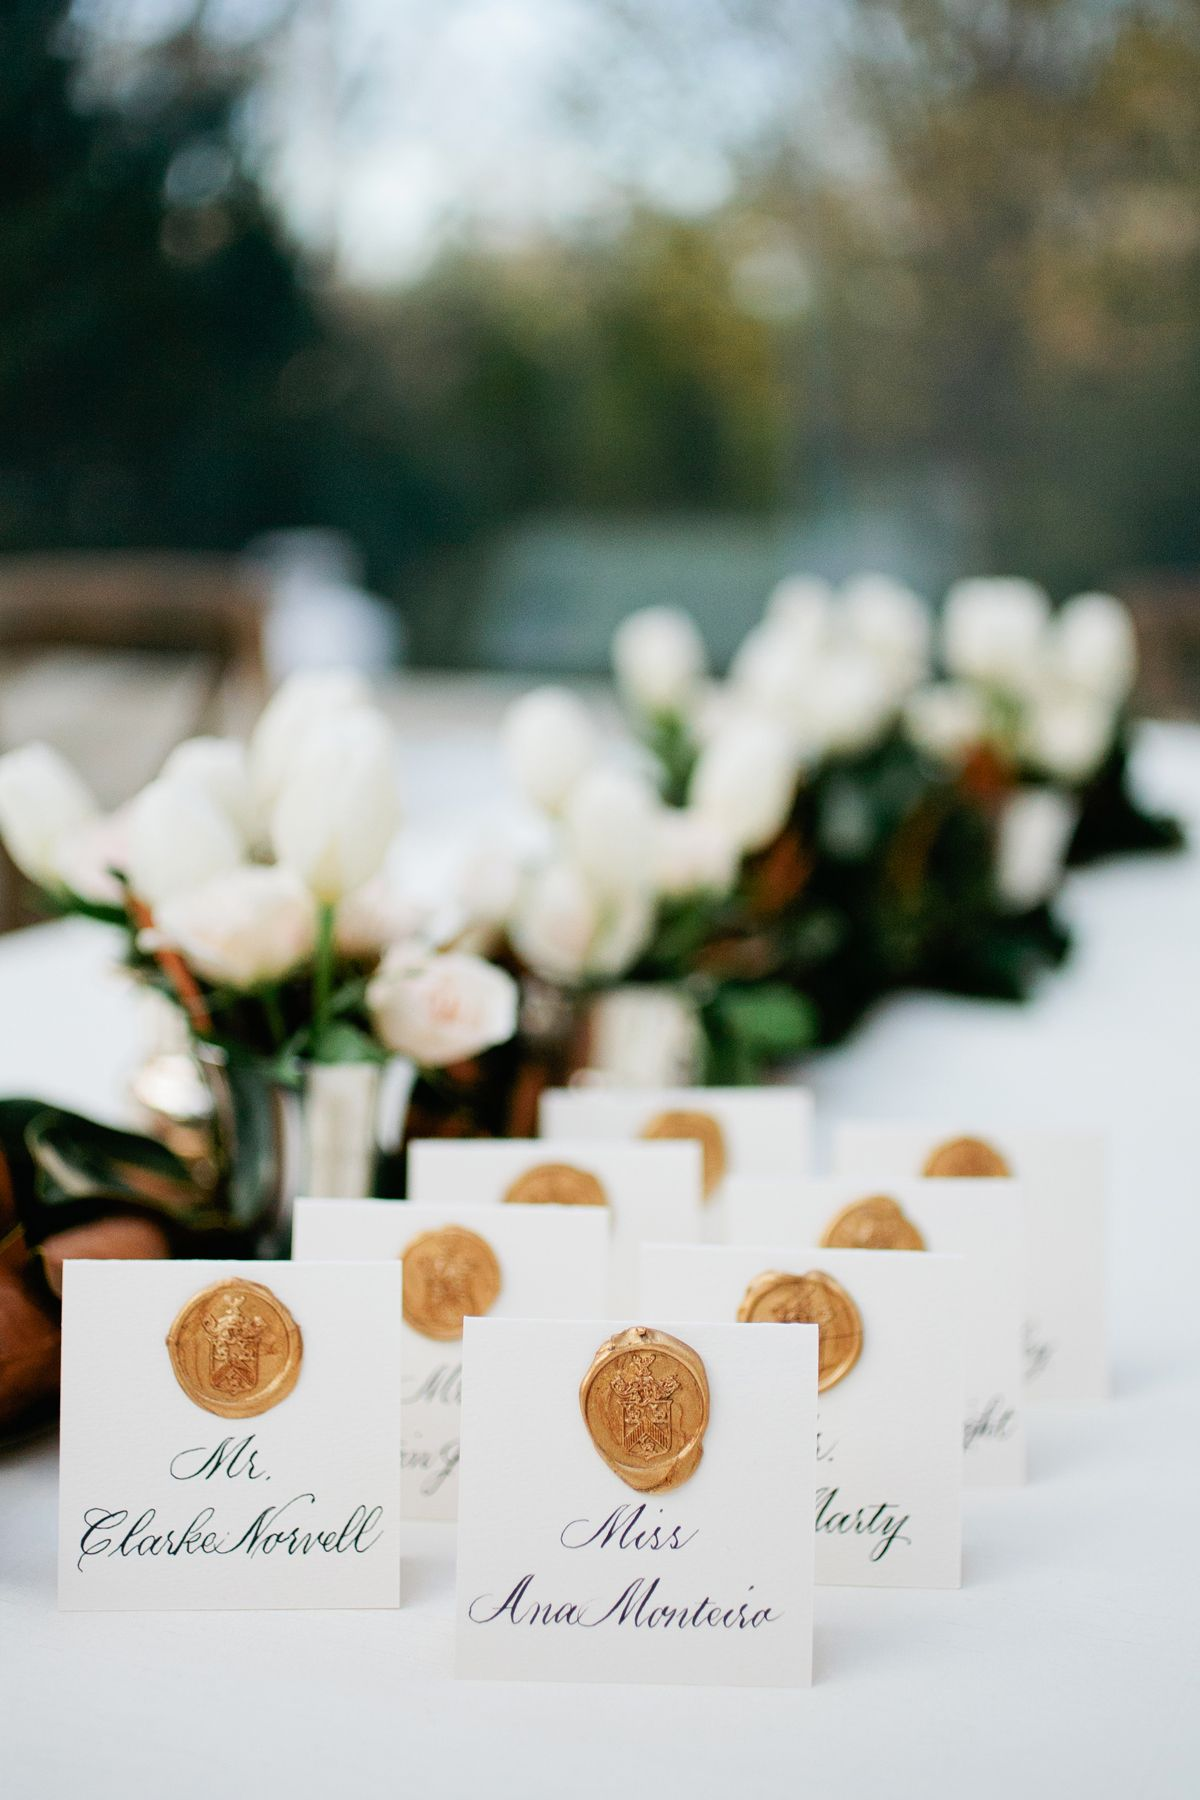 10 Best Wedding Place Cards - Wedding Decoration Ideas